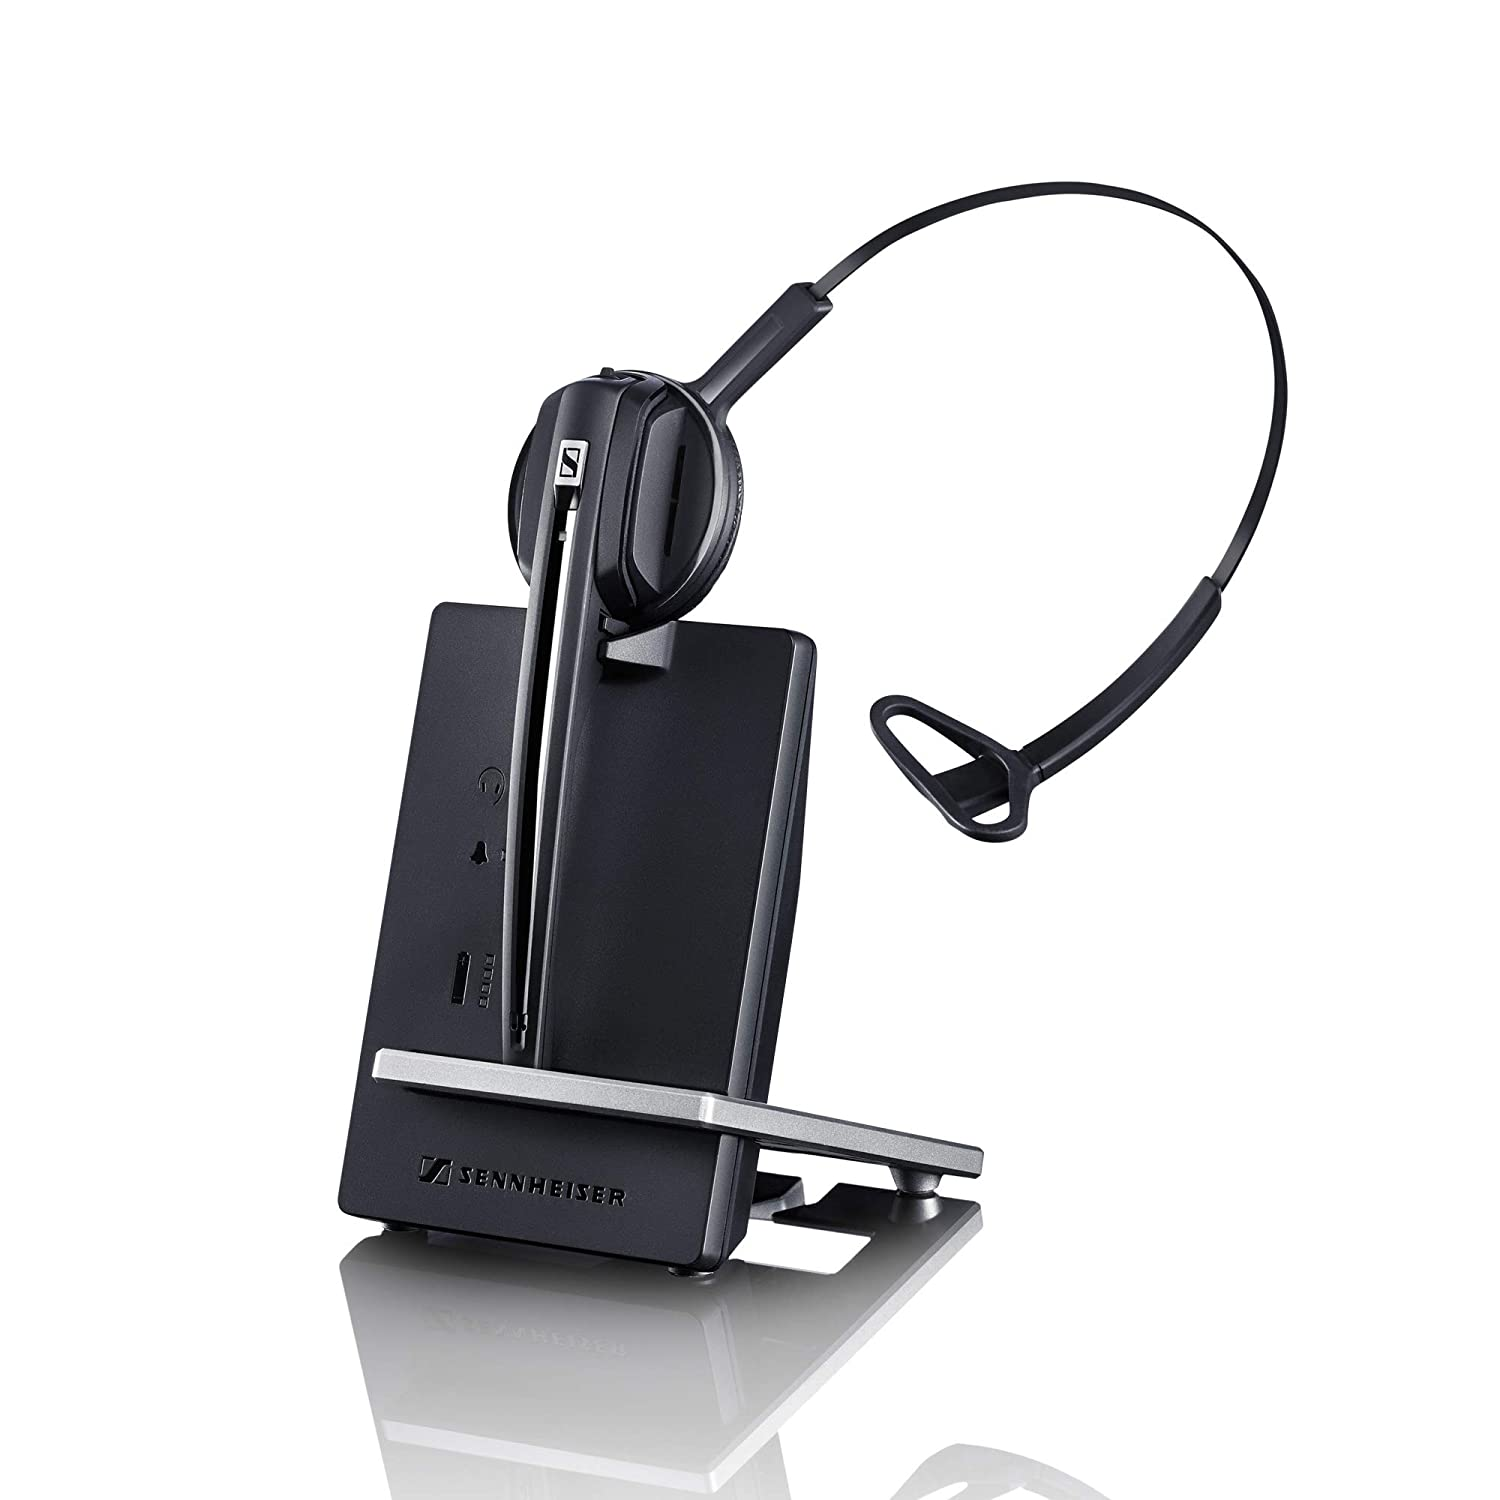 aa2bde240da Sennheiser D 10 USB - US (506414) Single-Sided Wireless DECT Headset for  Direct Softphone/PC Connection, with Noise Cancelling Microphone & 12-Hour  Talk ...